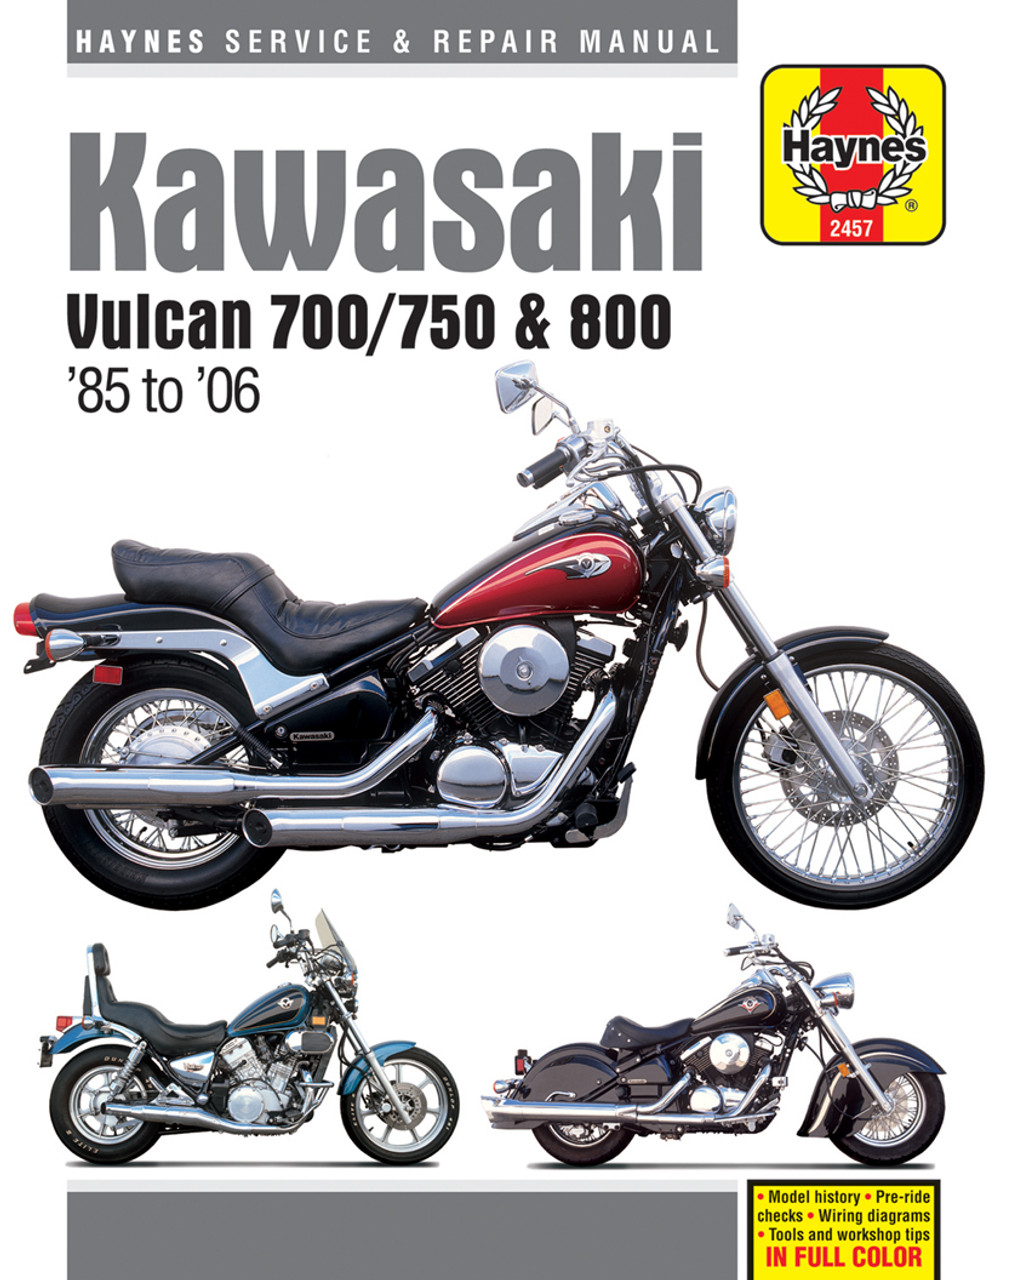 Kawasaki Vulcan 700 750 And 800 1985 2006 Workshop Manual 1978 Wiring Diagram 9781620922897